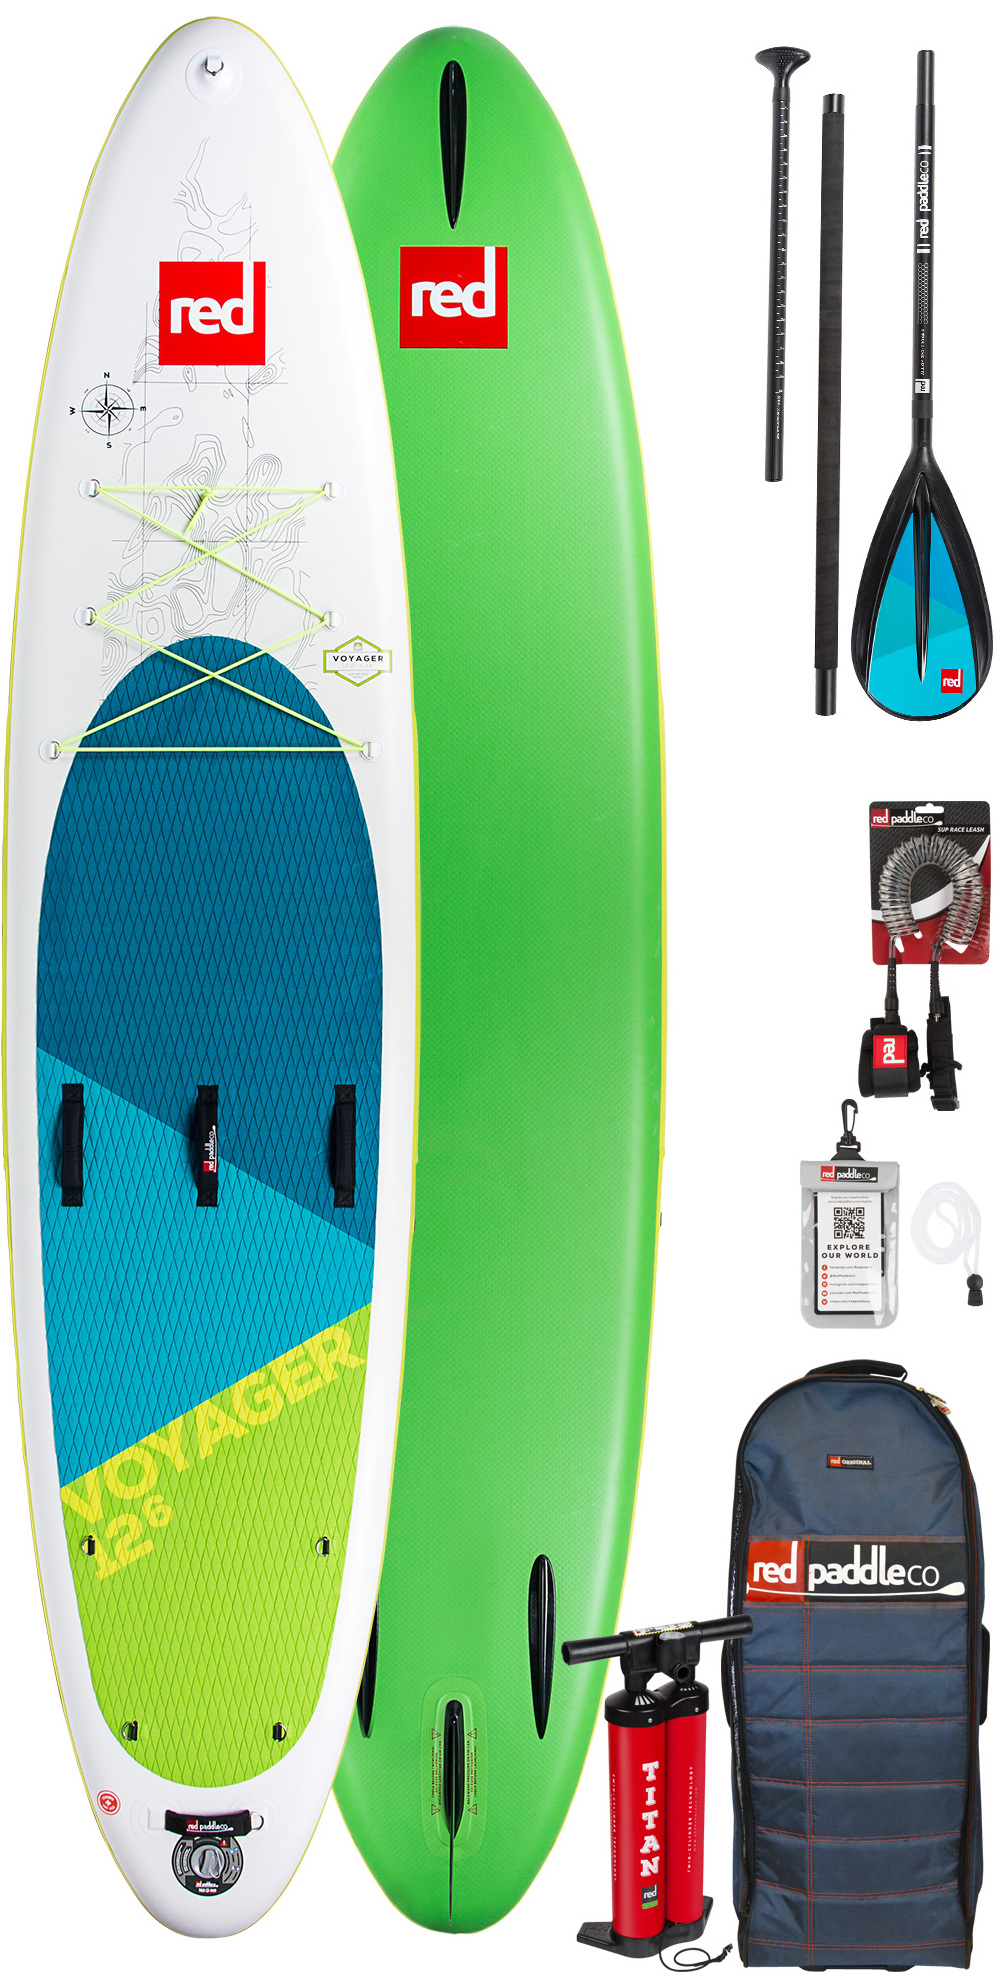 82f4e71192cbd5 2019 Red Paddle Co Voyager 126 Inflatable Stand Up Paddle Board Bag Pump  Paddle   Leash - Explorer